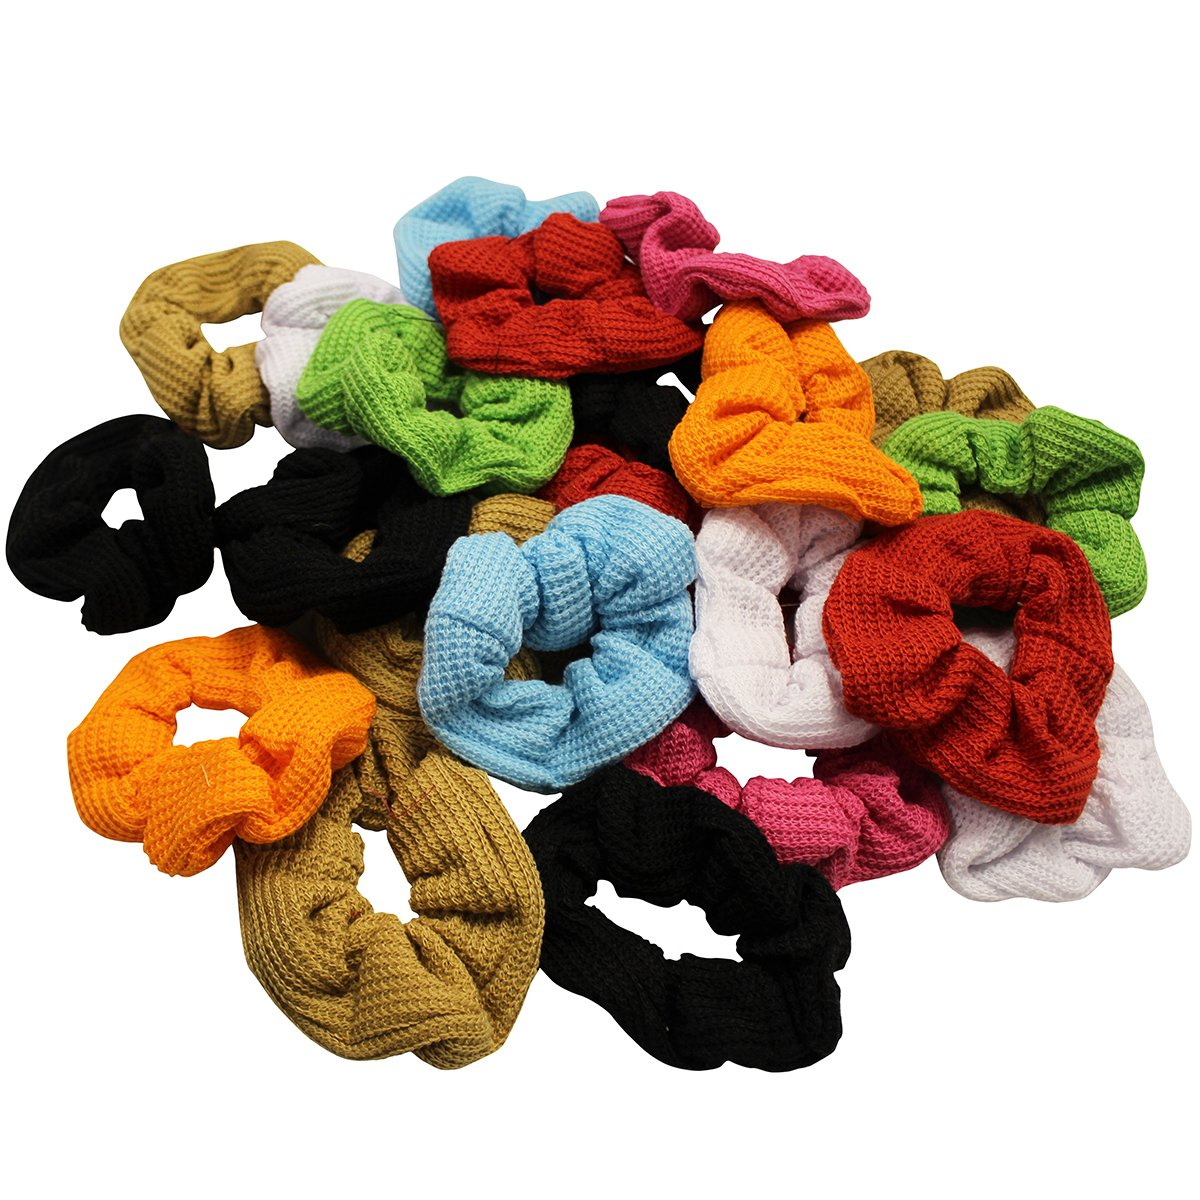 CoverYourHair Scrunchies for Hair - Colorful Scrunchies - Scrunchy Hair Ties - Assorted Hair Accessories by